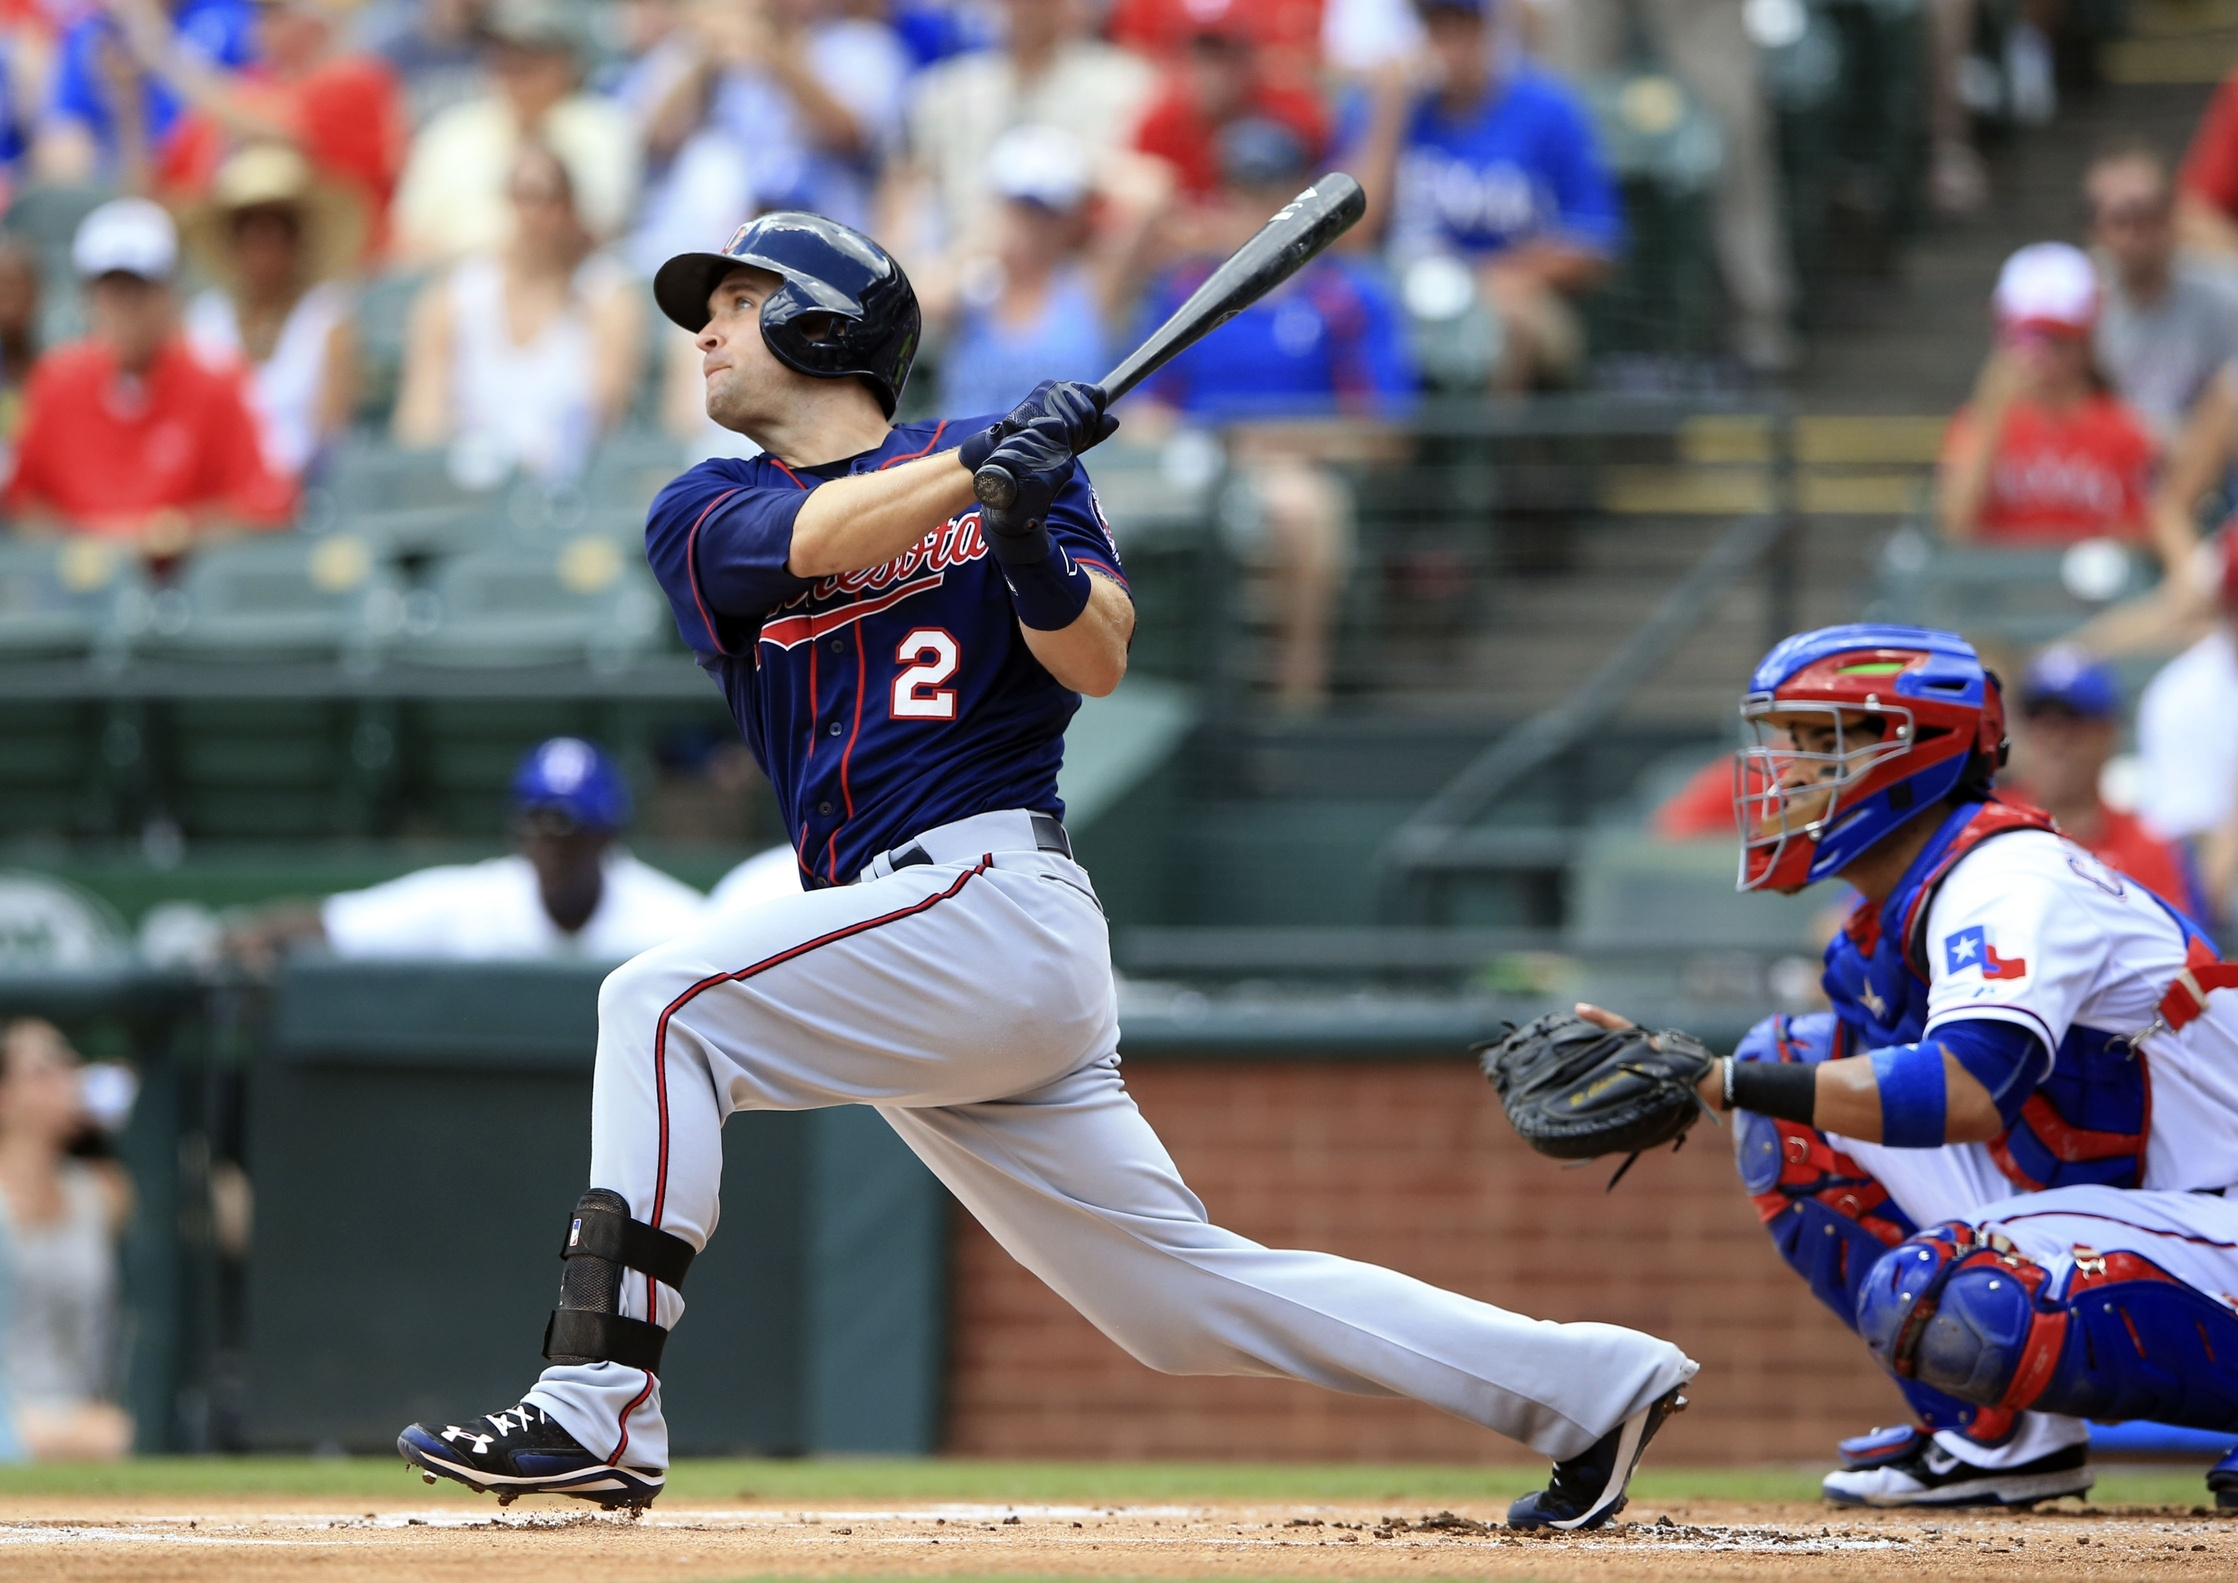 Hot Stove: Cardinals Appear To Have Interest In Twins' Brian Dozier